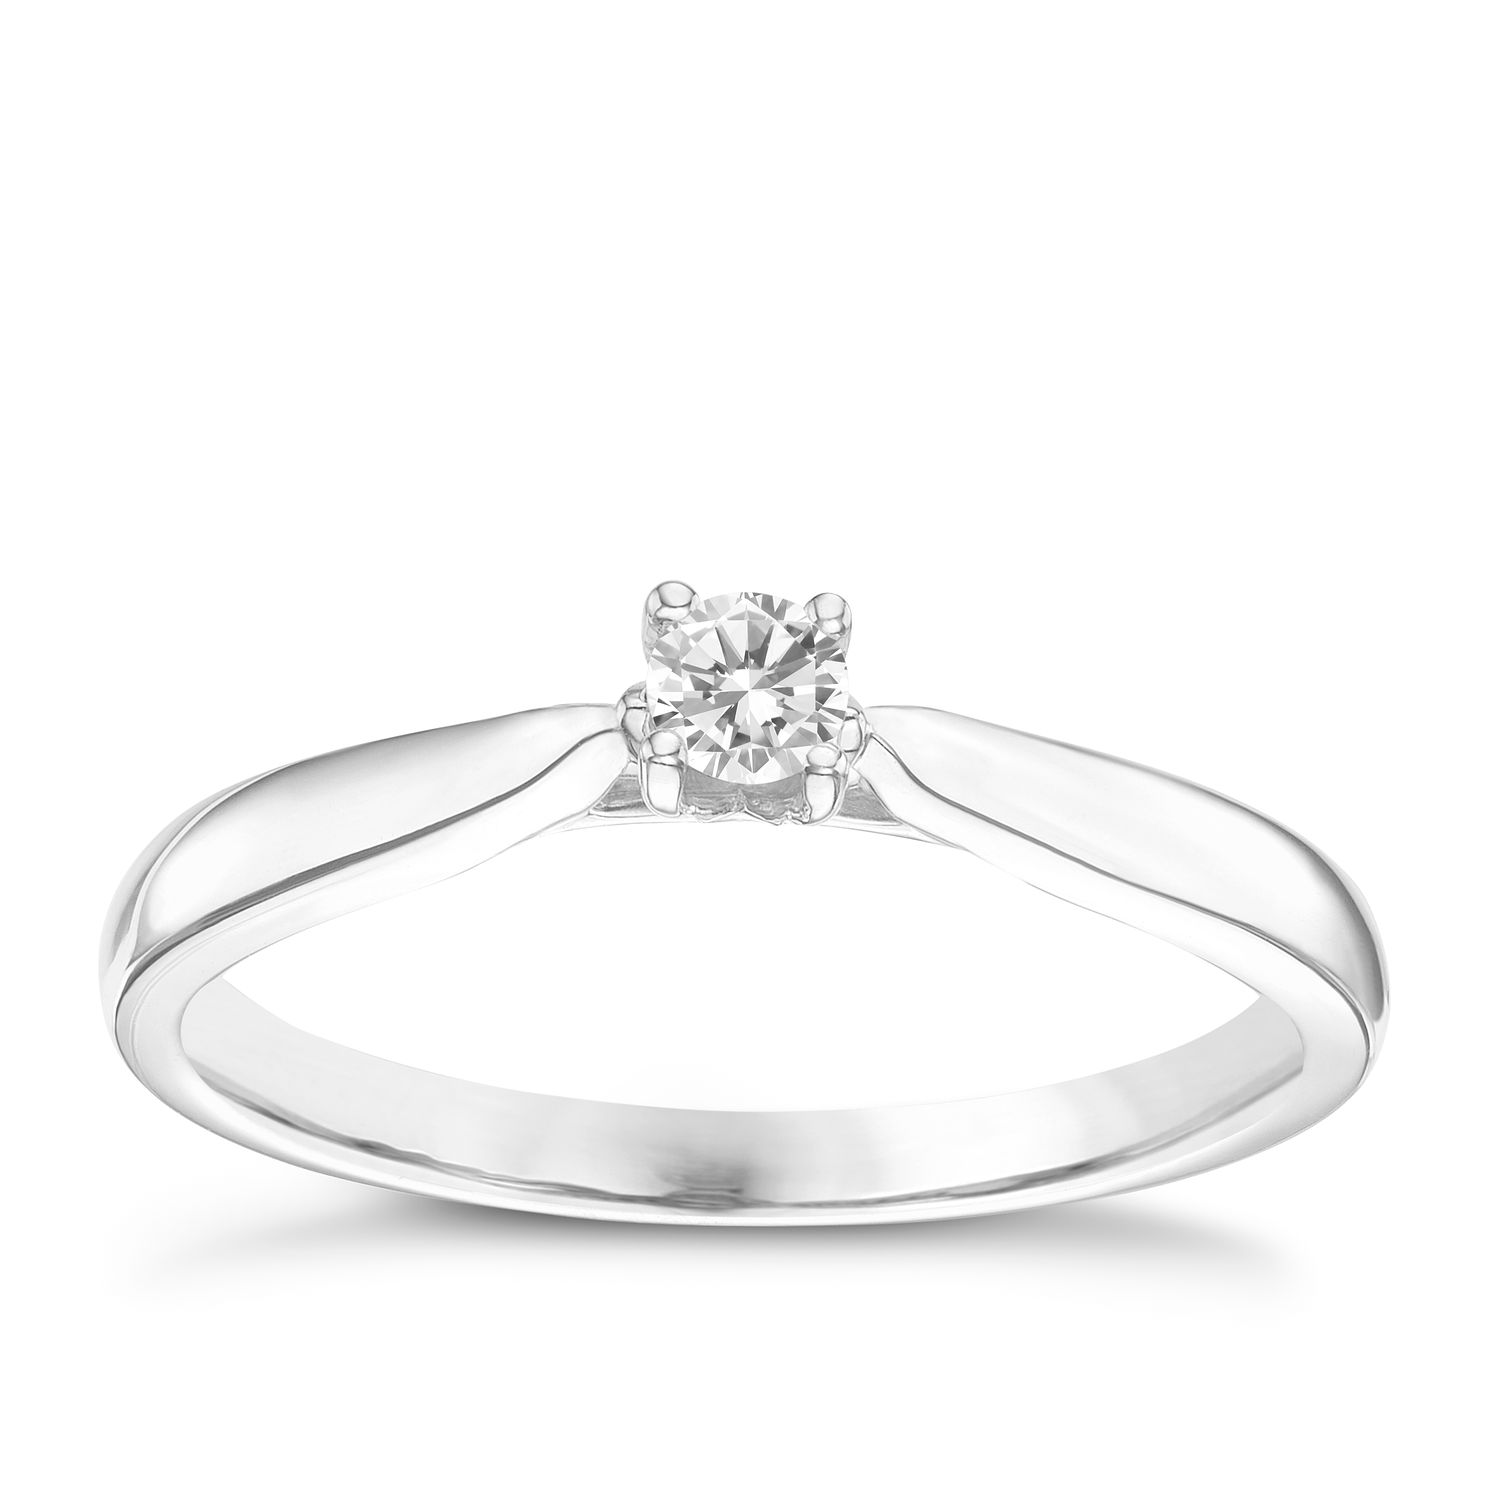 9ct White Gold 0.10ct Diamond Solitare Ring - Product number 6248209